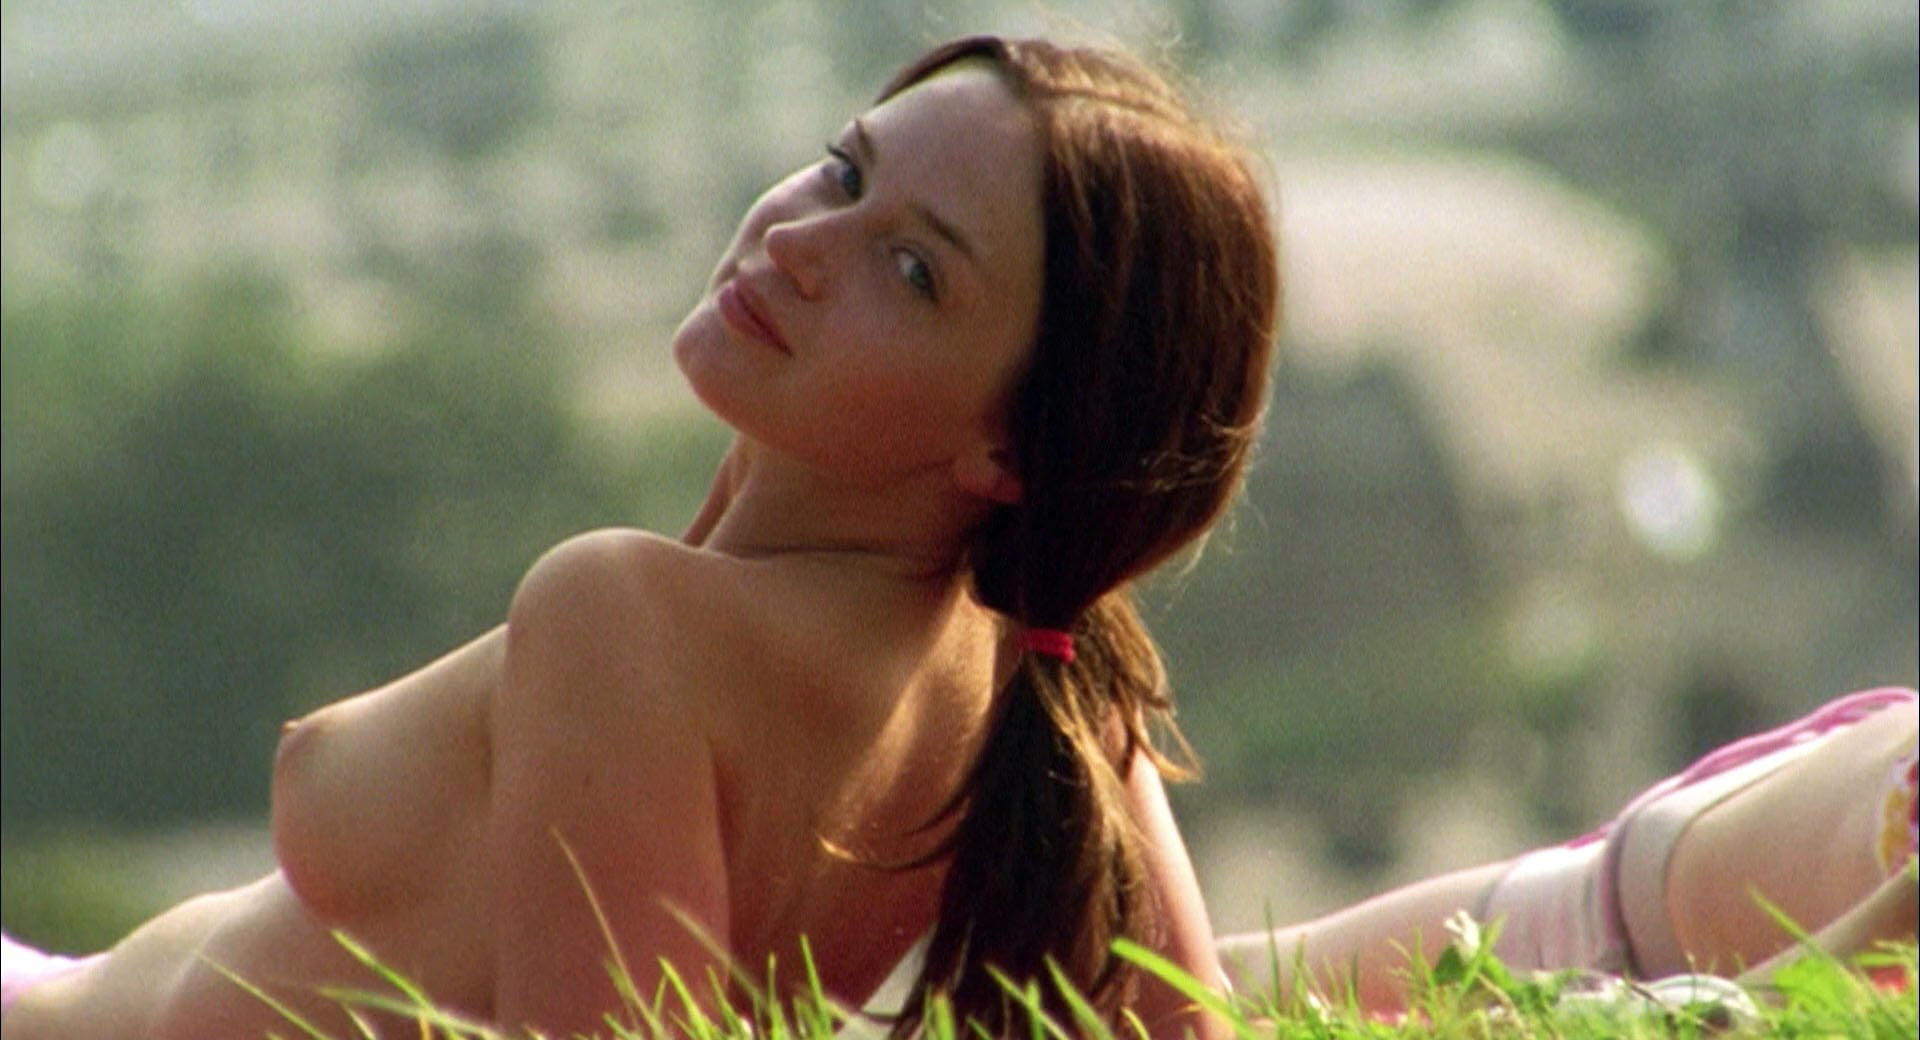 Emily Blunt nude, Natalie Press nude - My Summer of Love (2004)